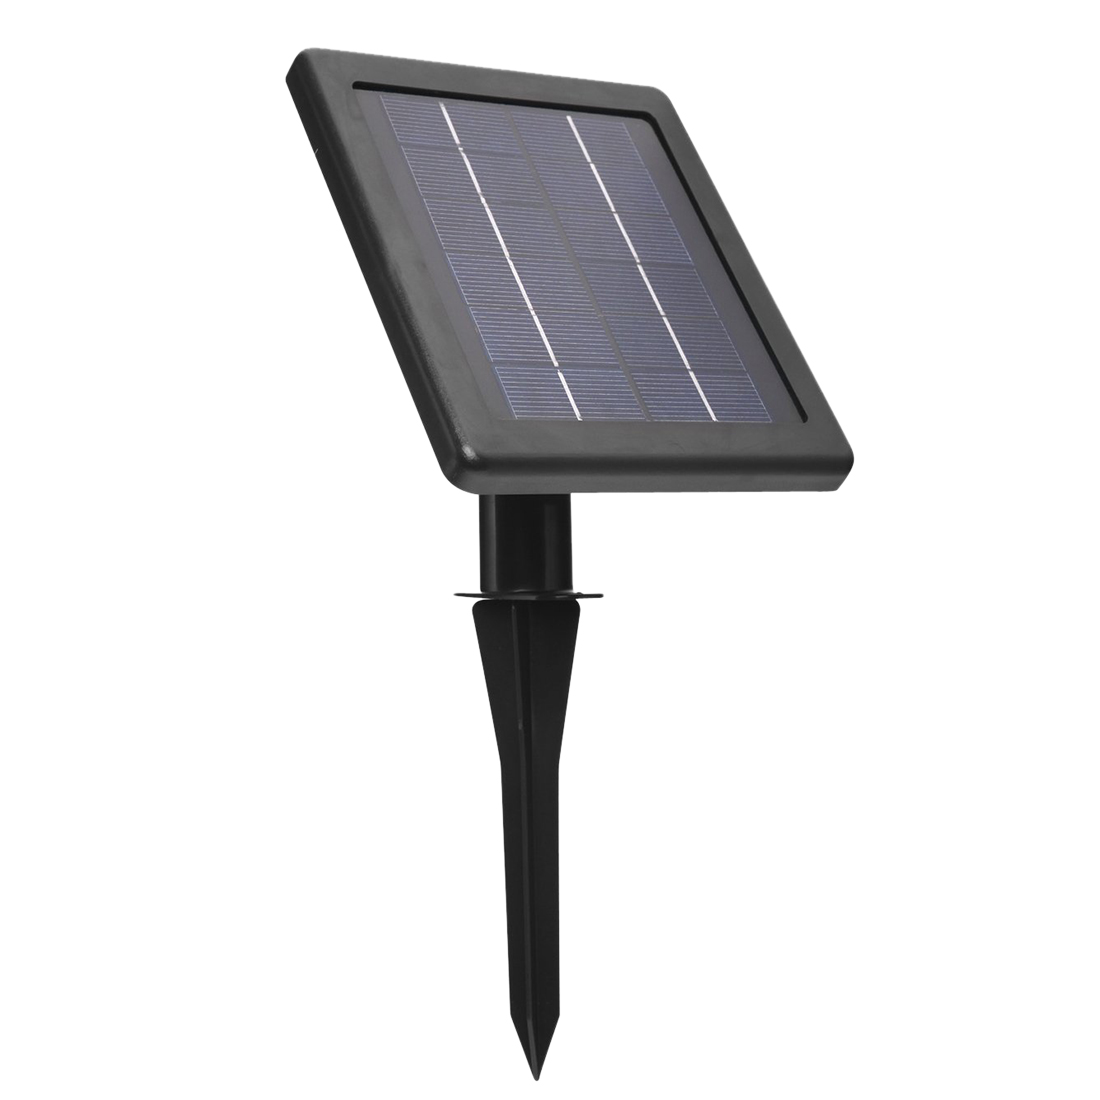 Rechargeable Waterproof Solar Powered 30 LED Spot Light White Lamp with Lithium Battery Inside for Lawn, Garden, Road, Hote youoklight 0 5w 3 led white light mini waterproof solar powered fence garden lamp black